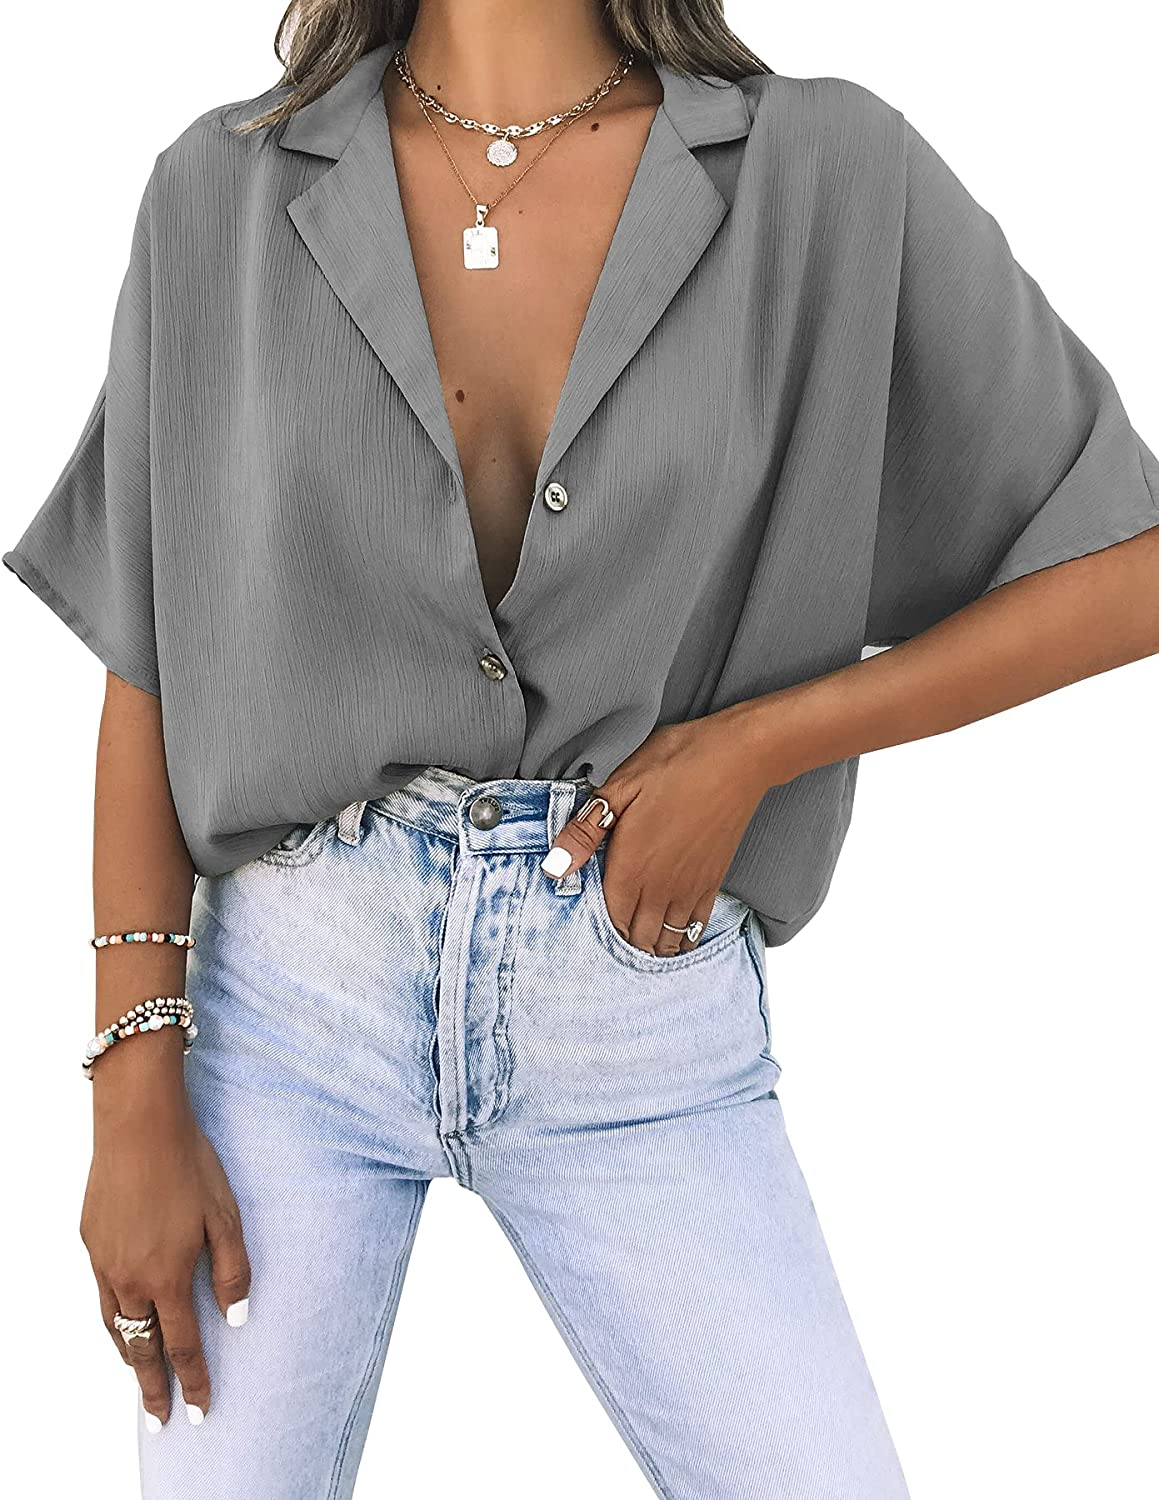 Womens Short Sleeve Button Down Shirts V-Neck Lightweight Loose Fit Casual Blouse Tops